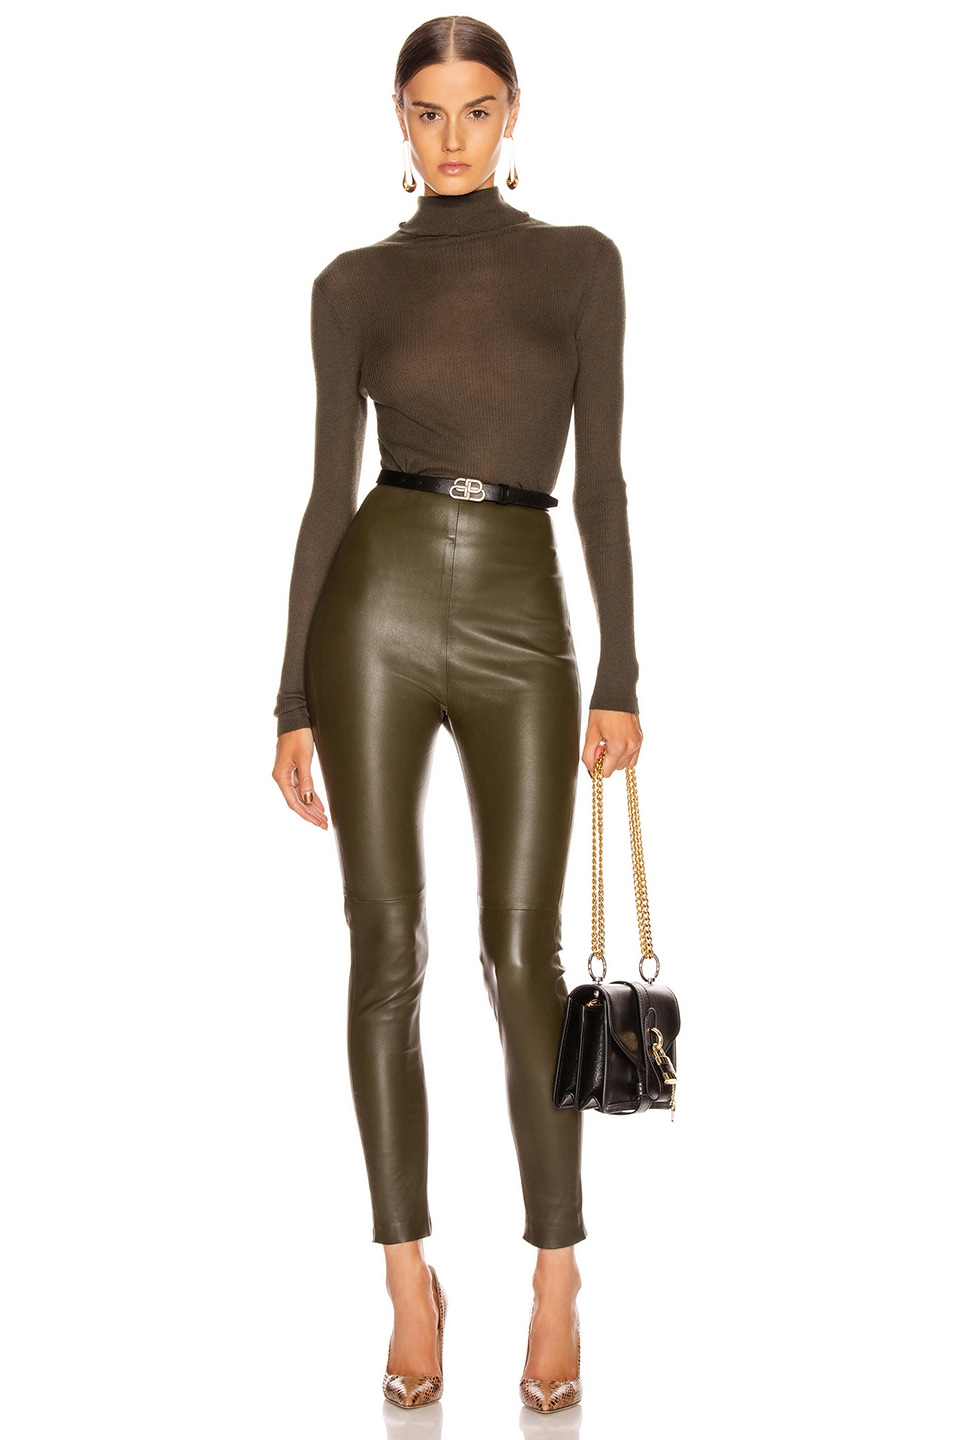 Image 4 of SABLYN Jessica Pant in Olive